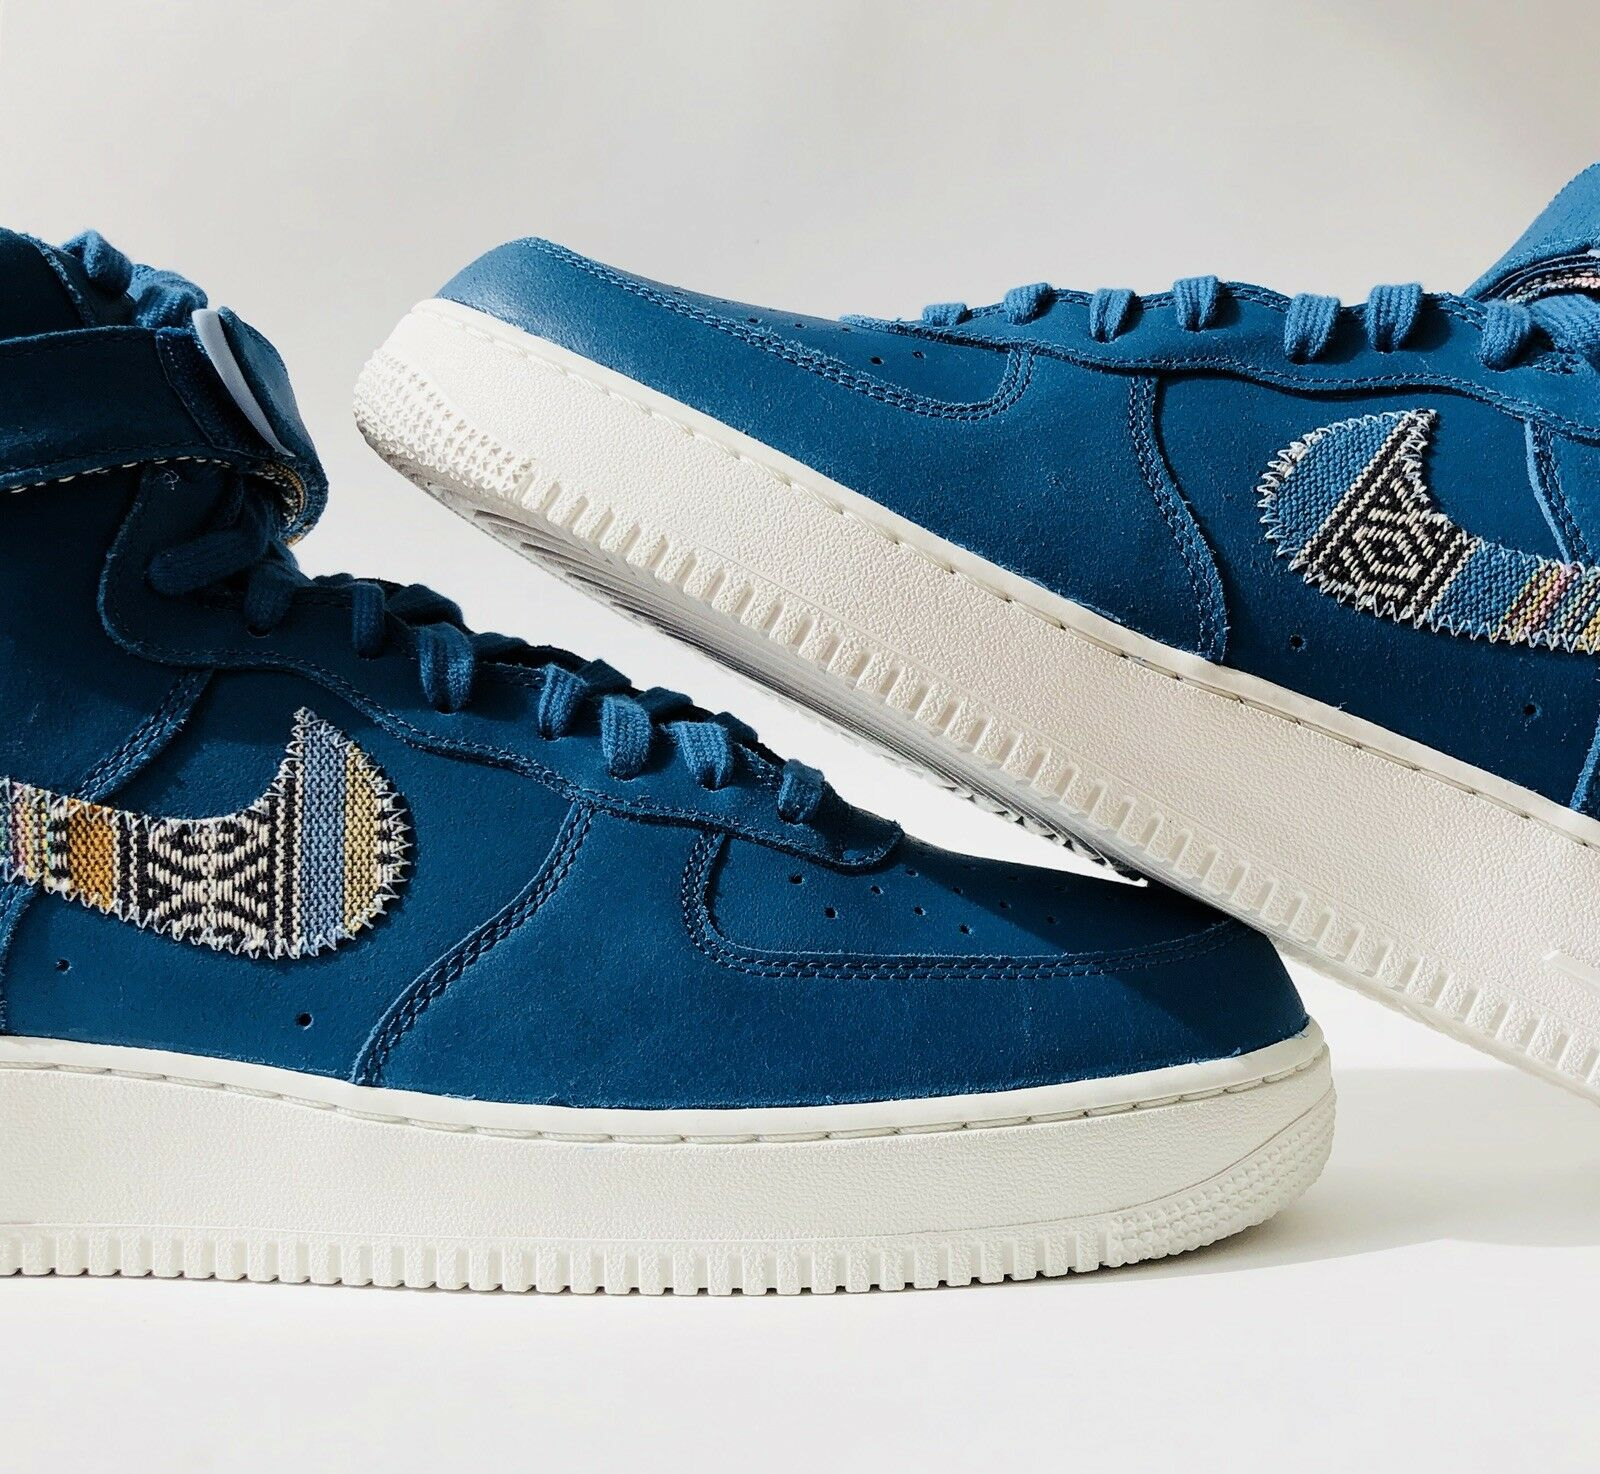 Nike Air Force 1 High '07 lv8 Size 11.5